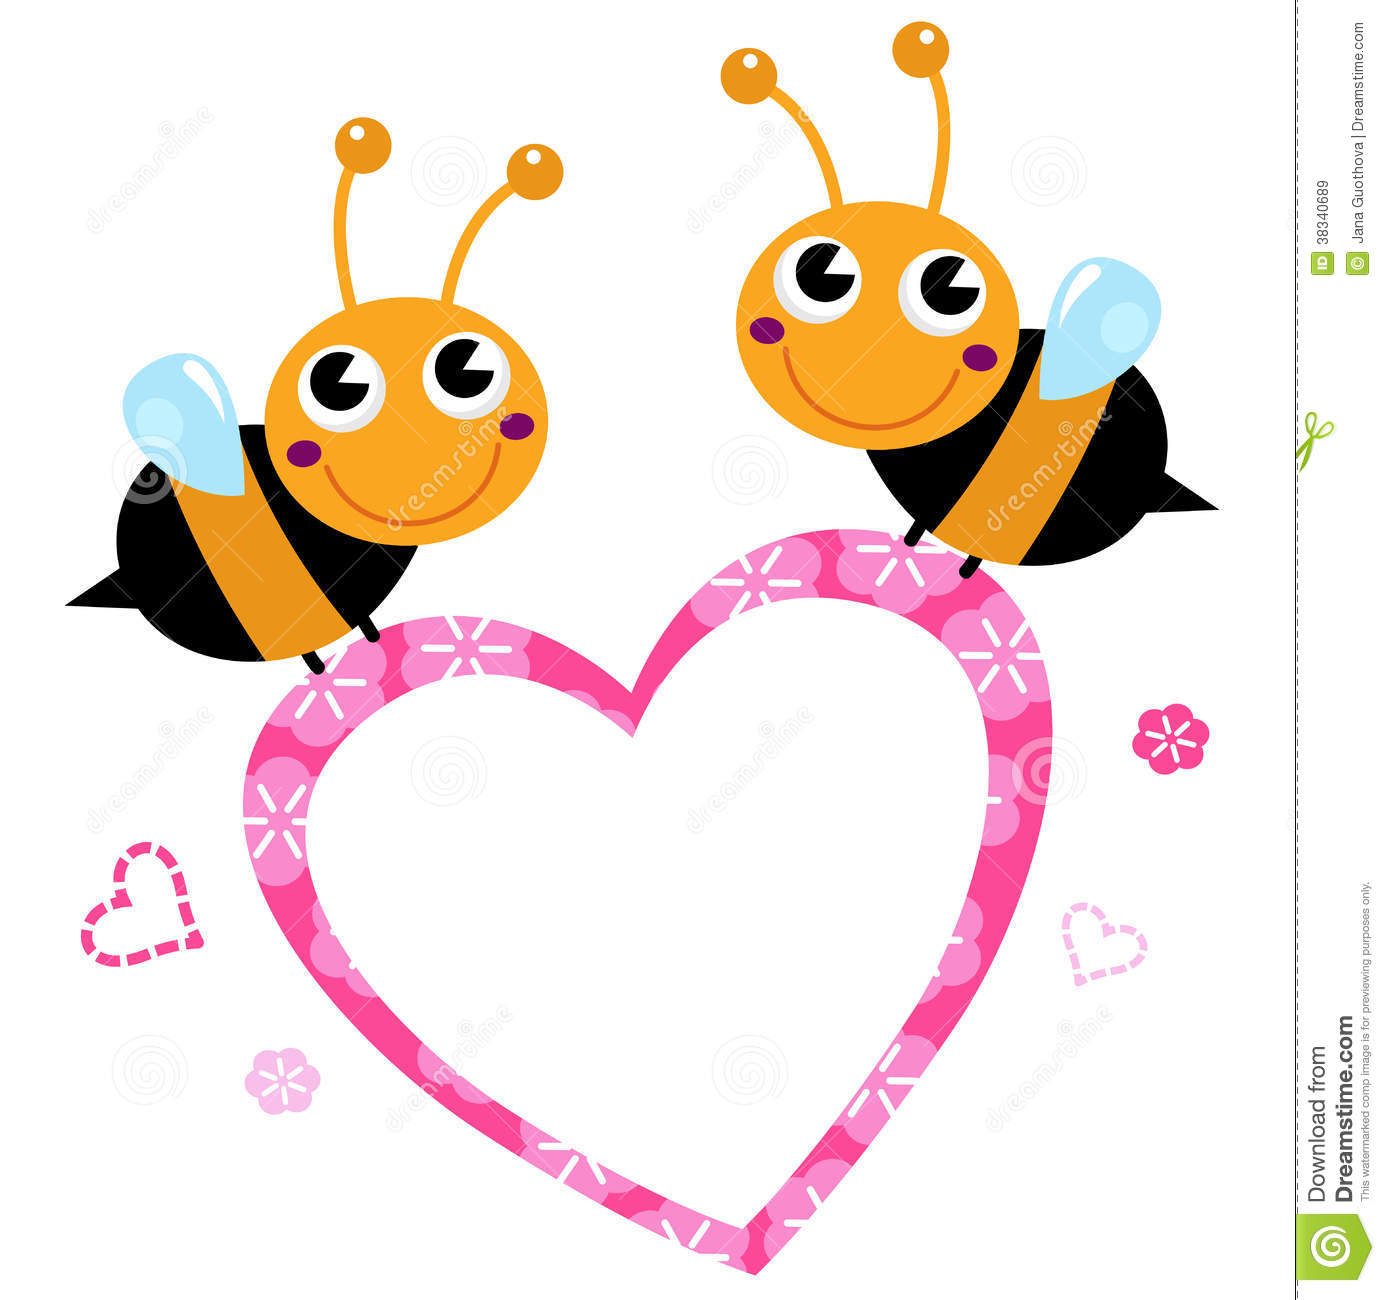 Free clipart images bees hearts graphic transparent download Cute Flying Bees With Pink Love Heart Royalty Free Stock Images ... graphic transparent download